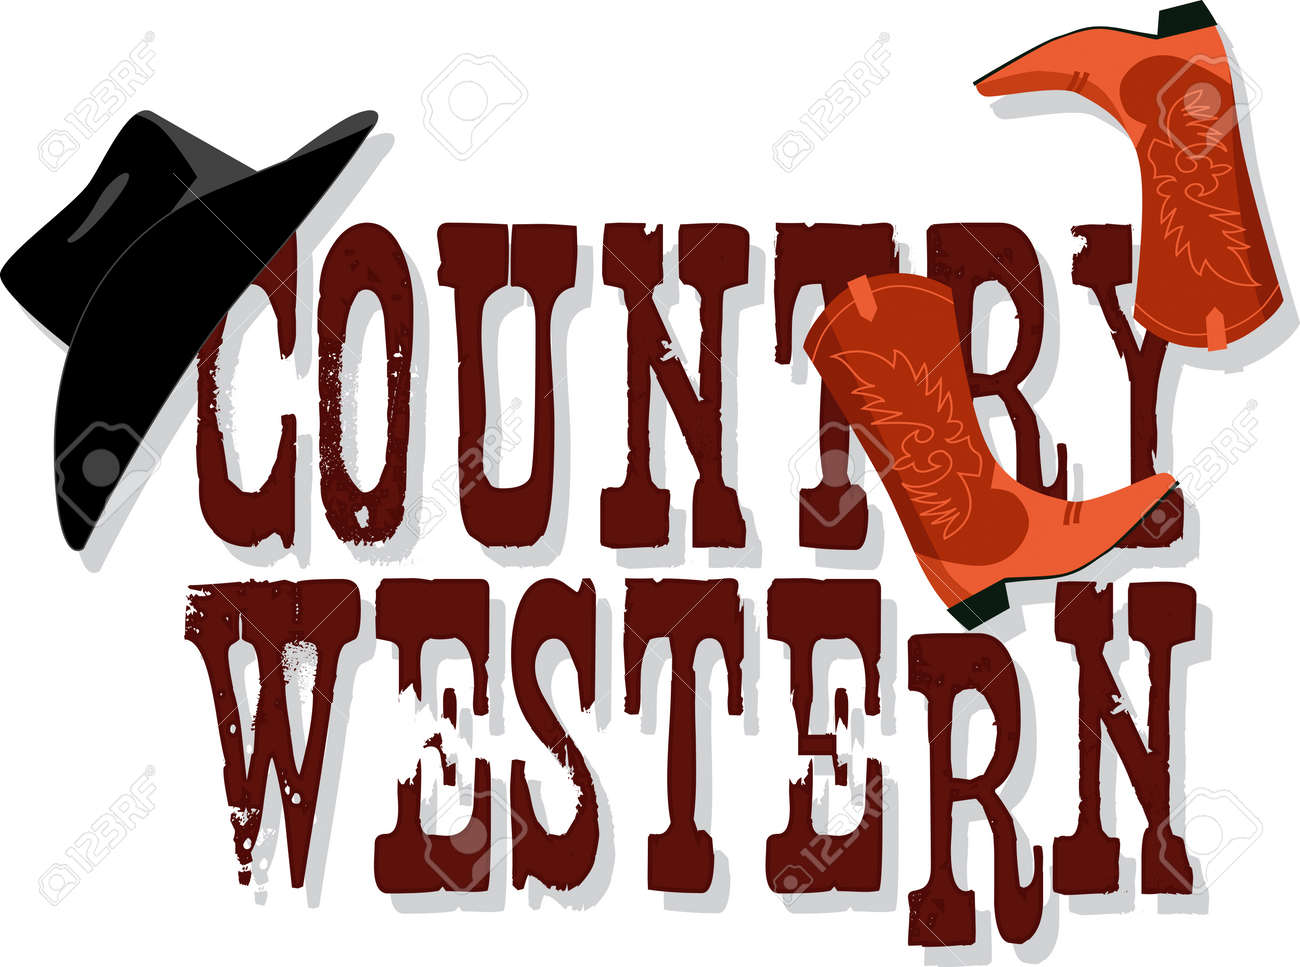 14,682 Country Western Stock Illustrations, Cliparts And Royalty ...